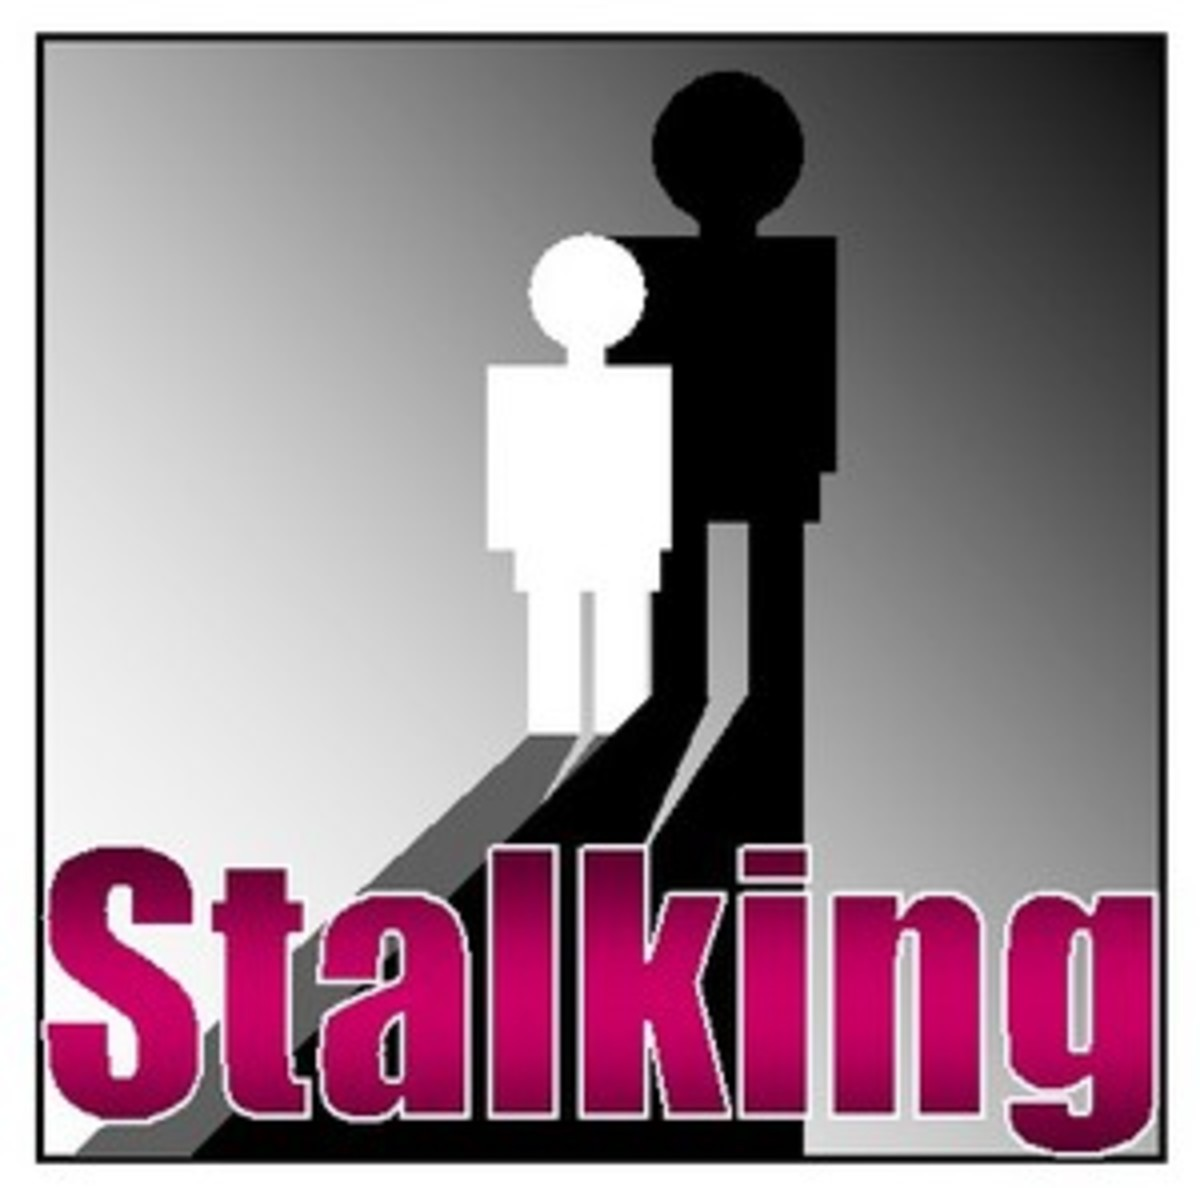 True Story: Am I Being Stalked? | Being Stalked is Scary | Listen to Intuition and Be Aware of Stalkers